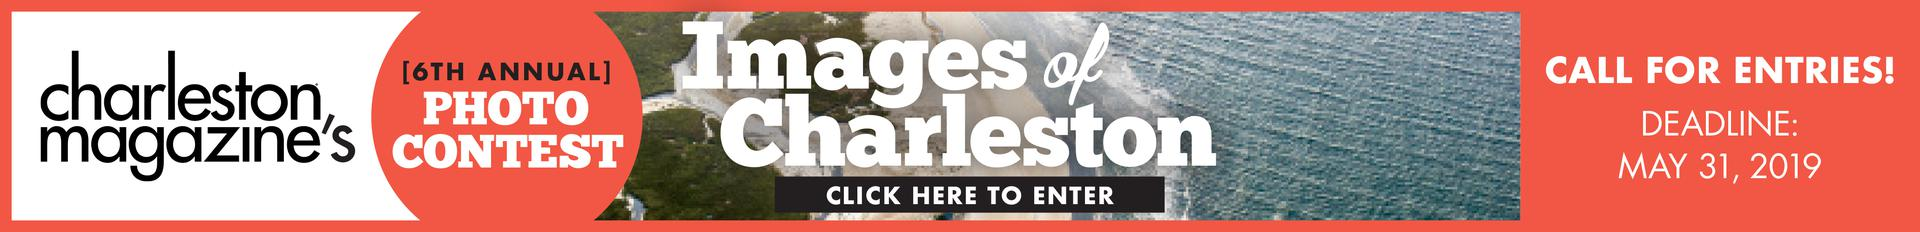 6th Annual Images of Charleston Photo Contest